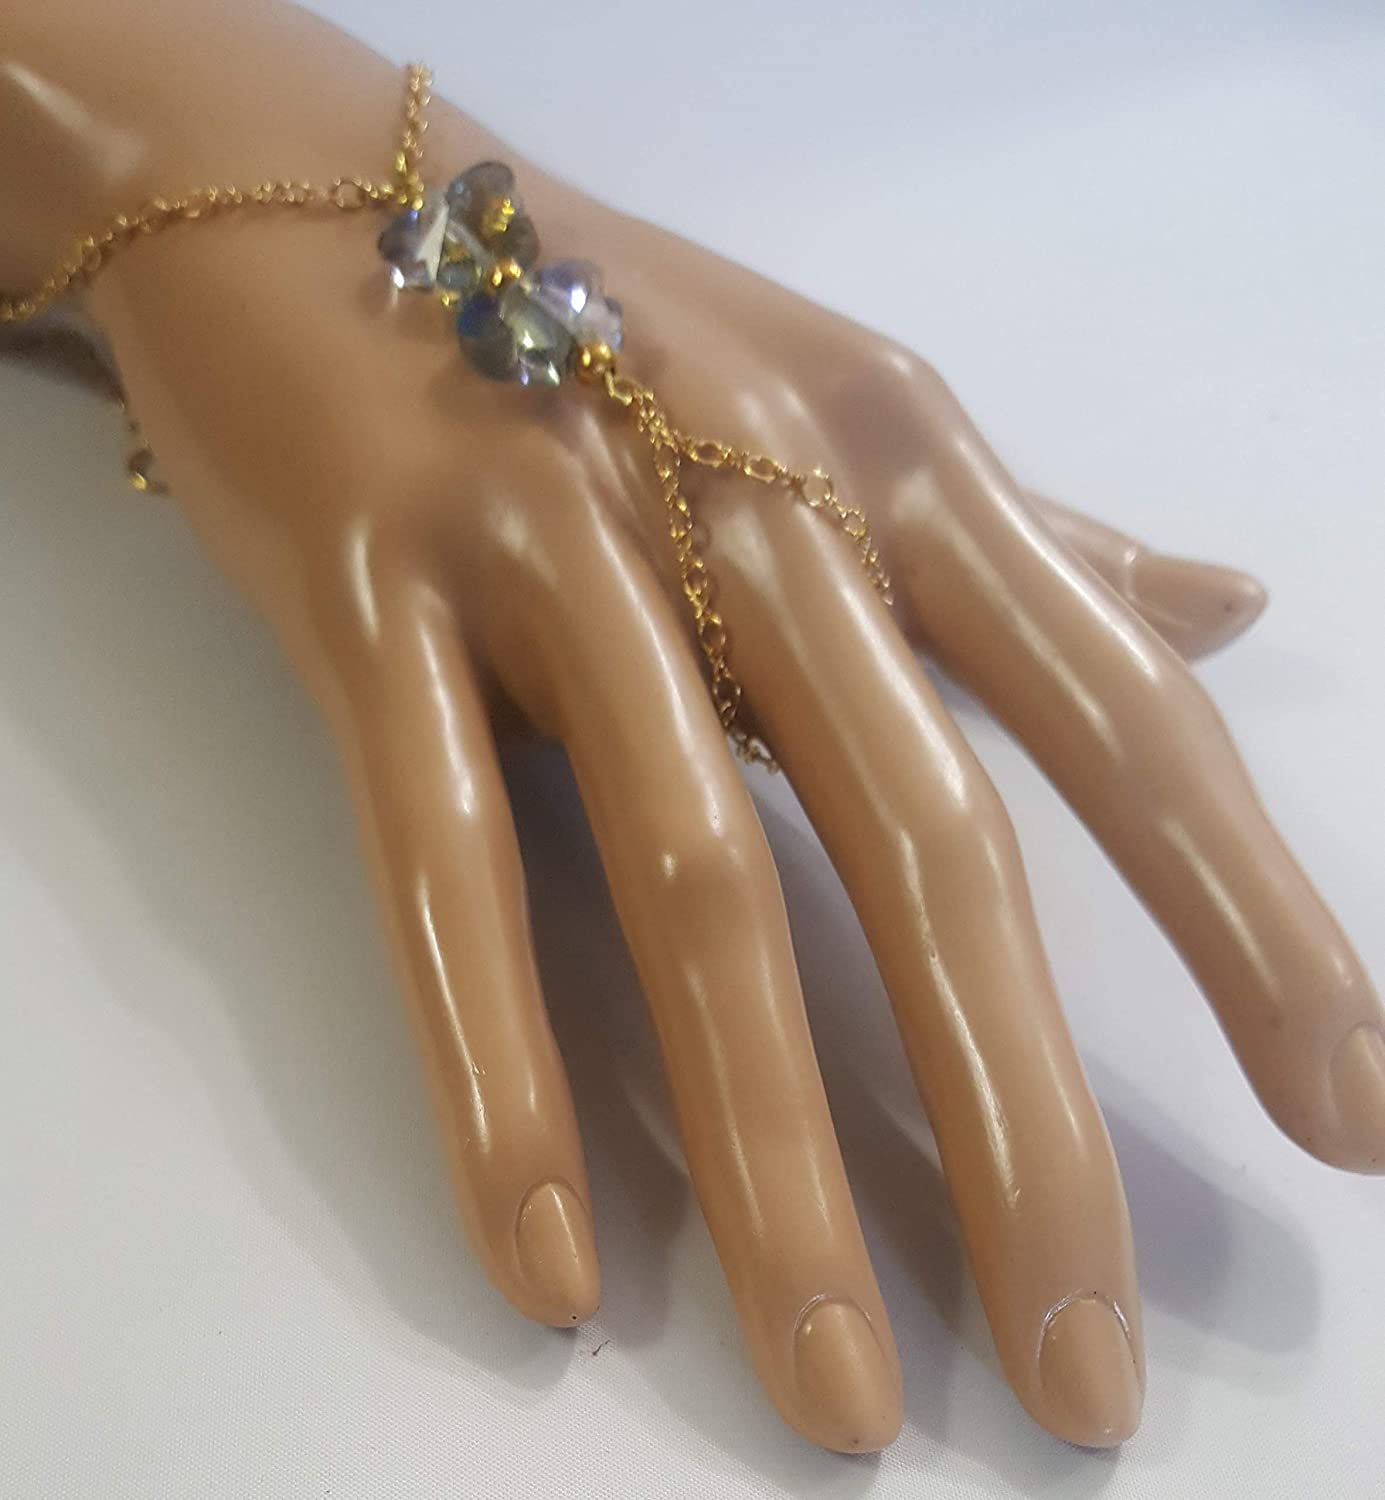 Handmade Hand Chain Cheap sale Slave with Harness Cheap mail order specialty store Gold Bracelet